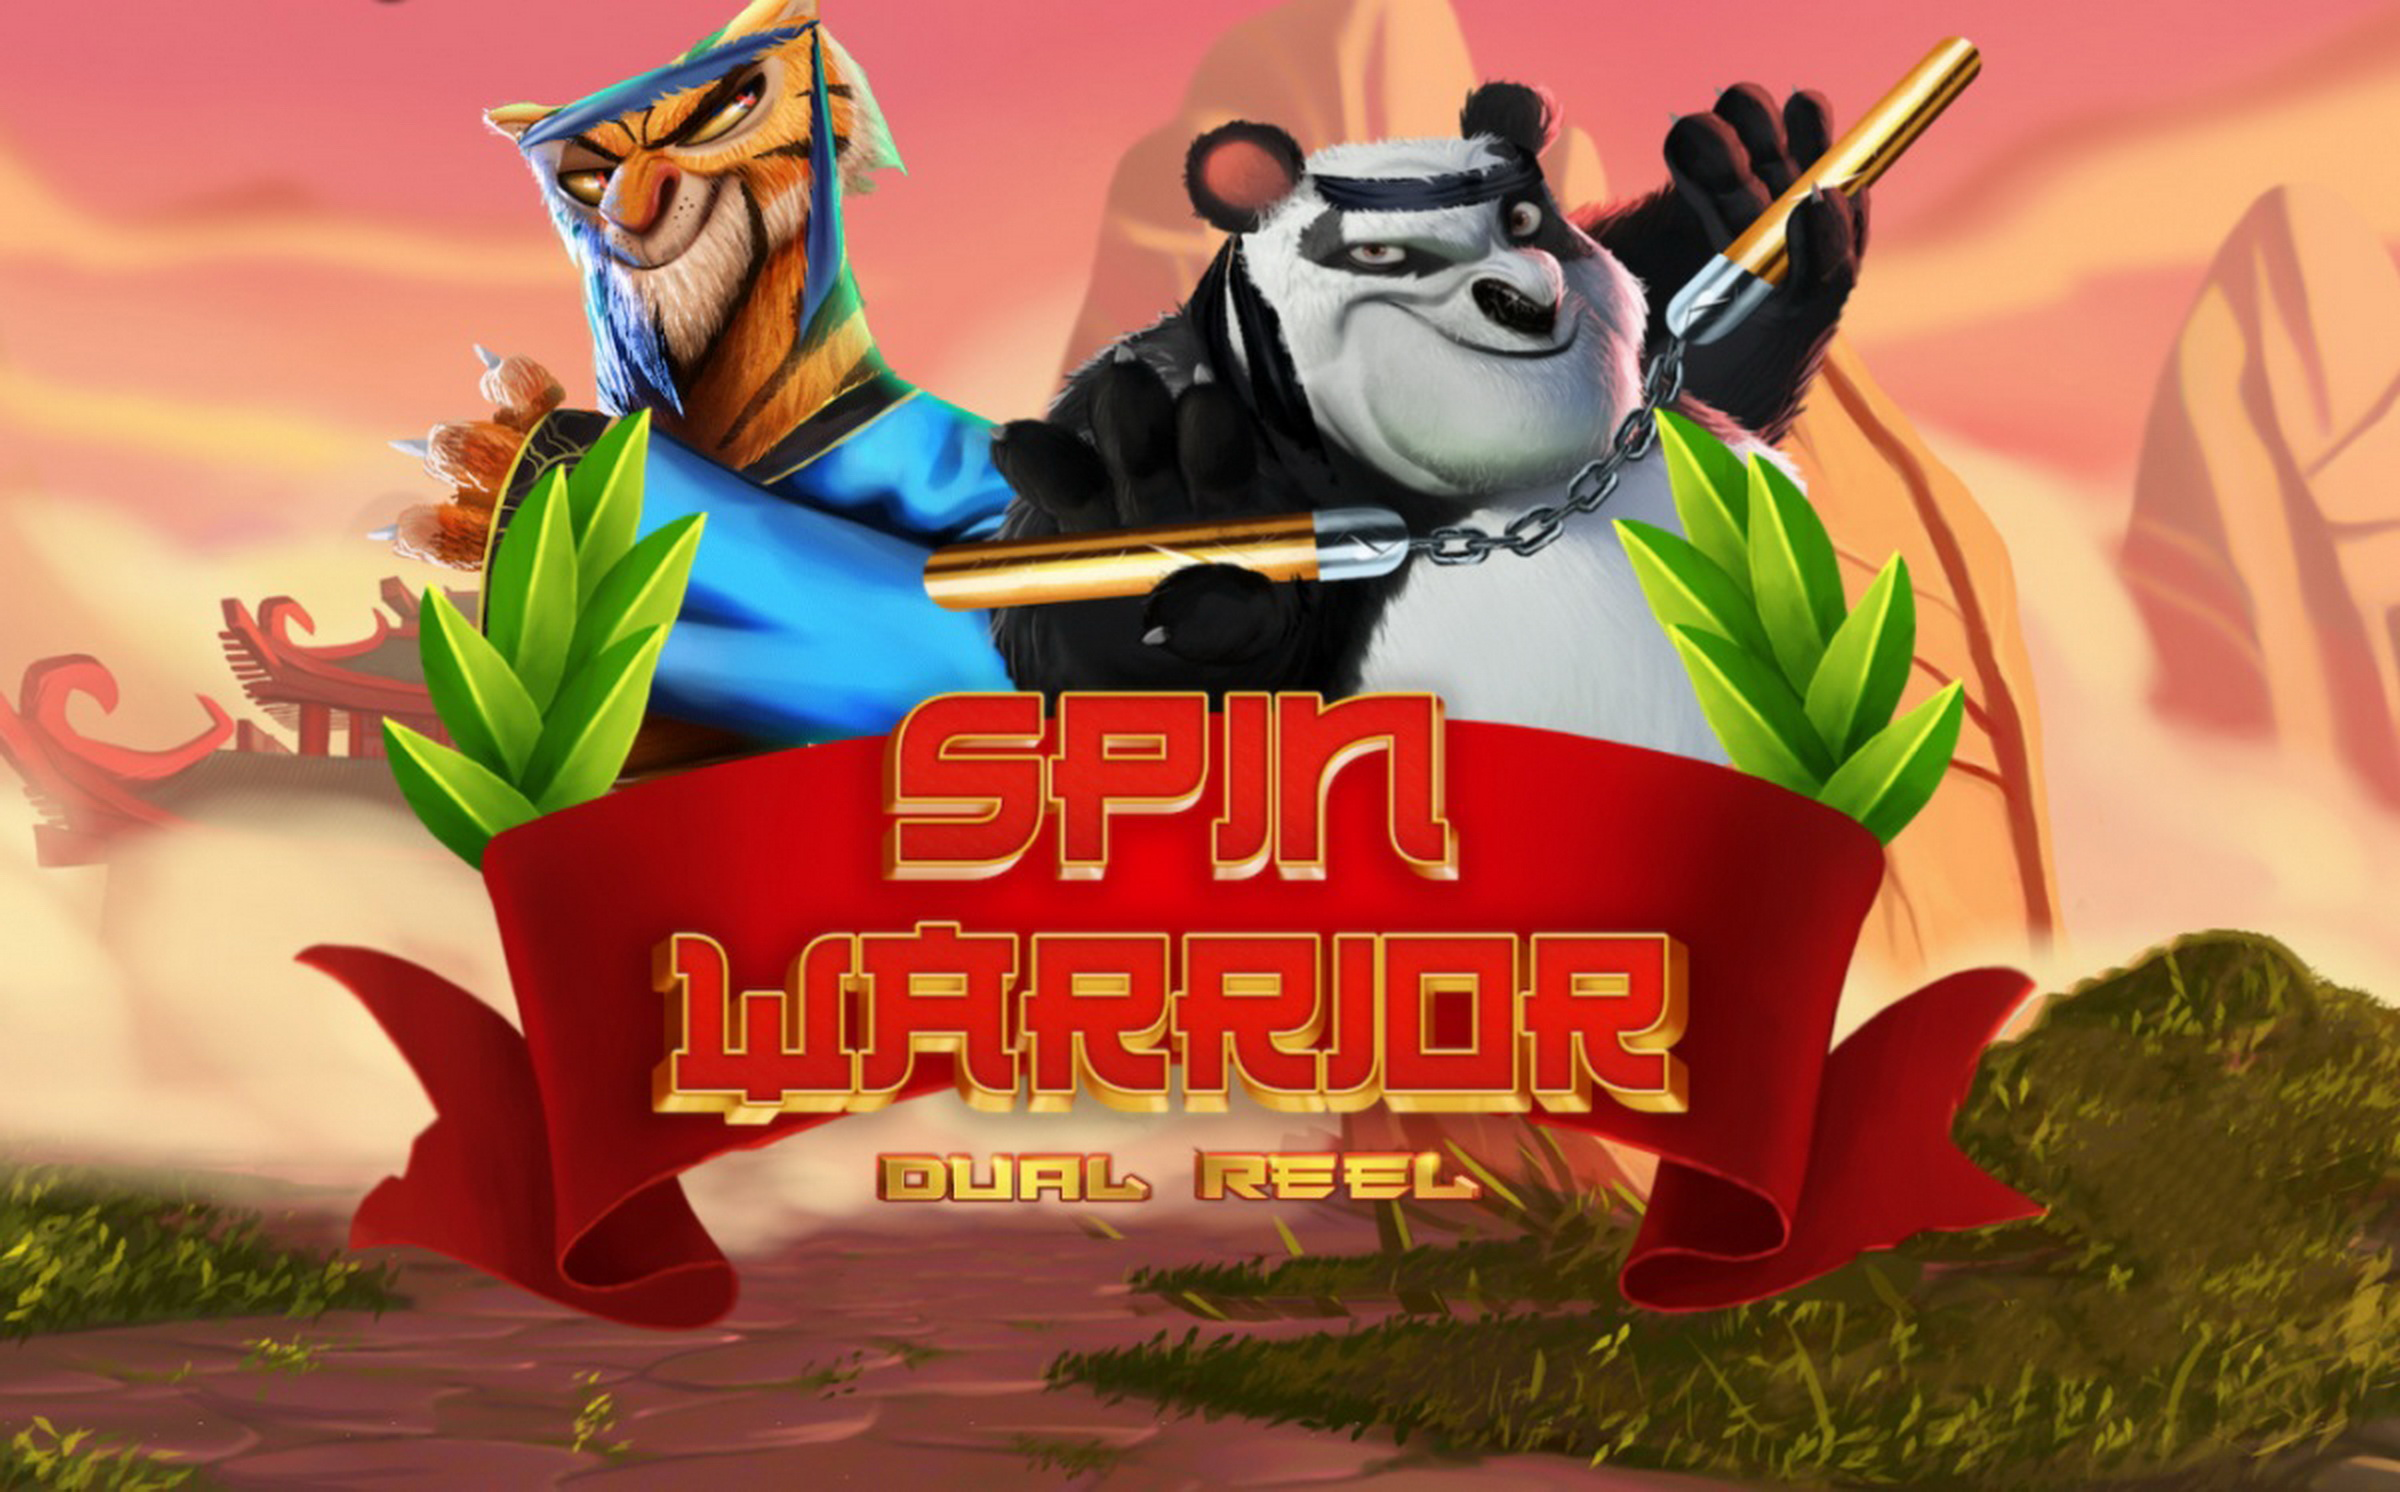 The Spin Warrior Online Slot Demo Game by Boomerang Studios